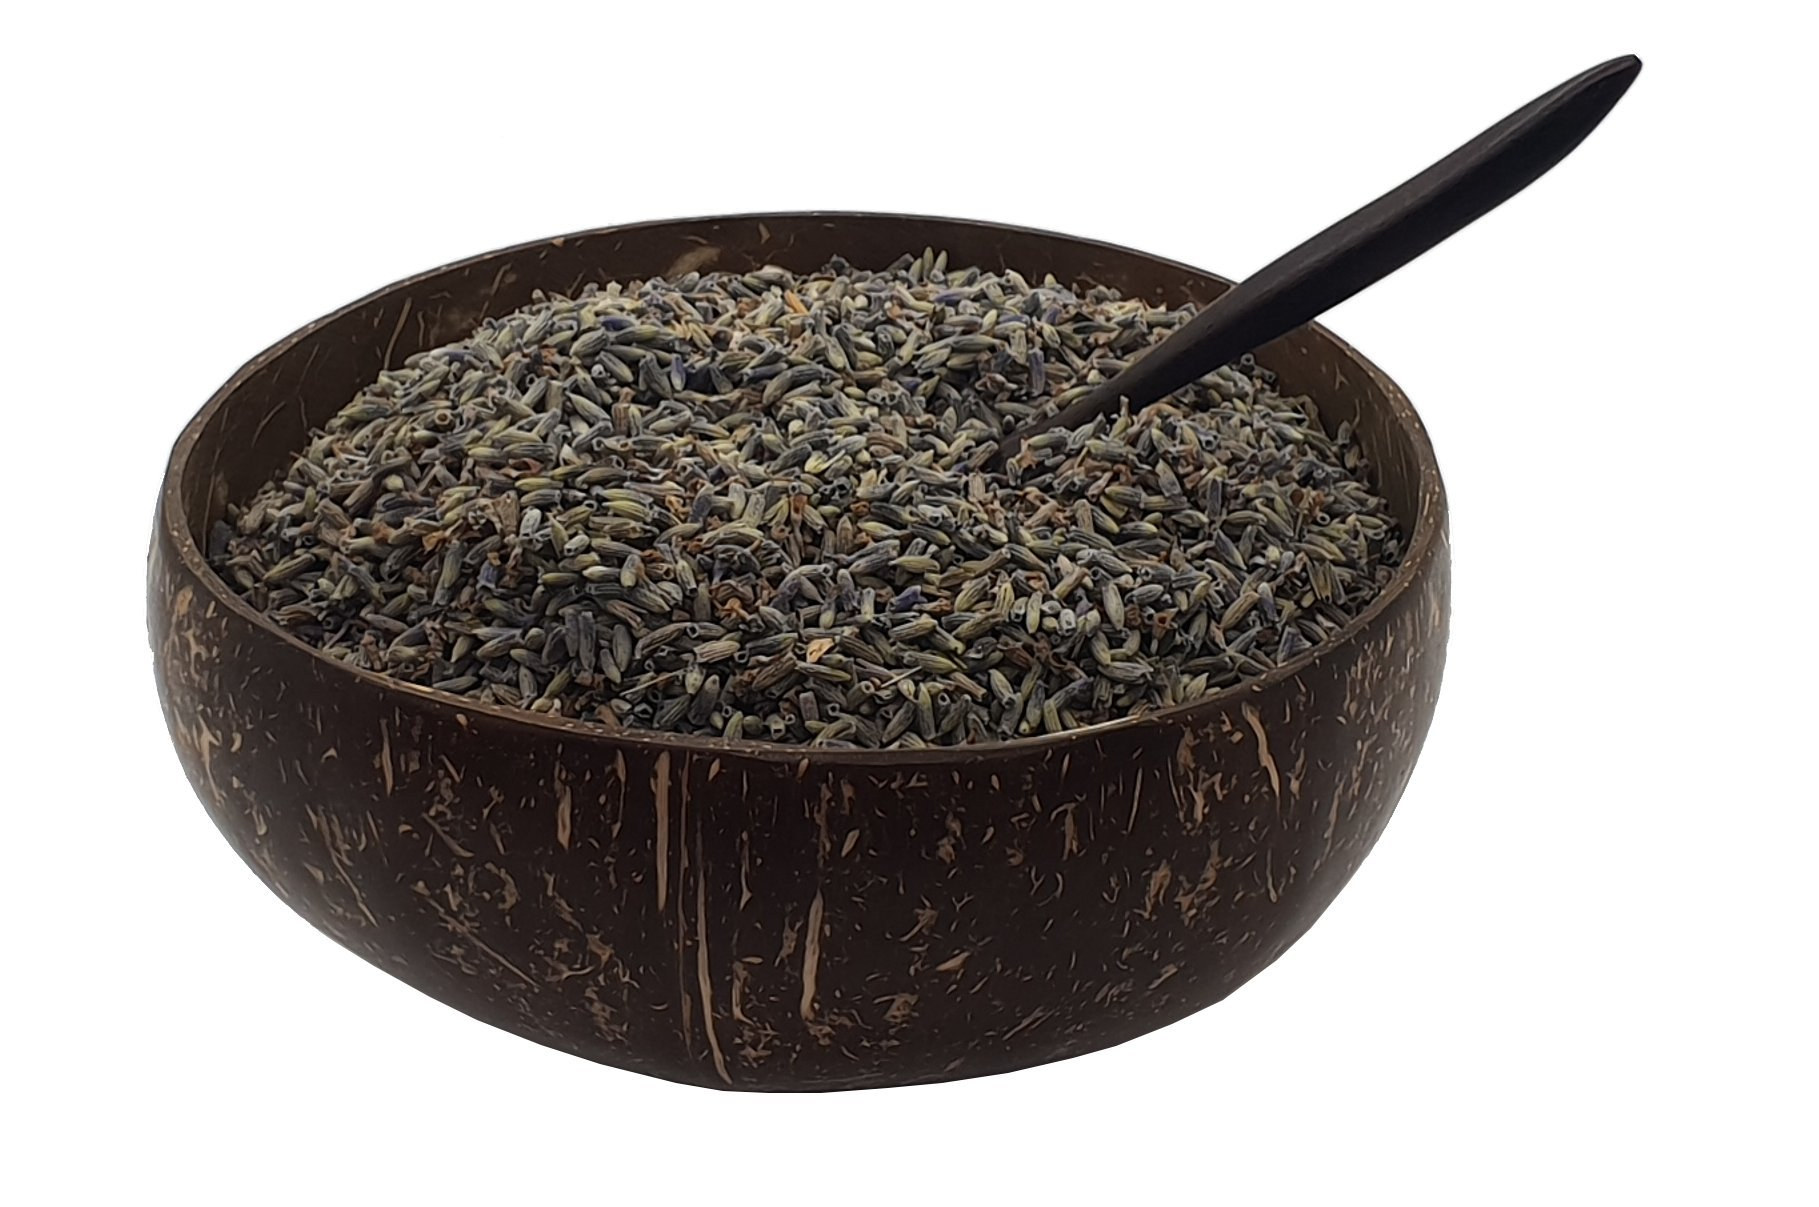 Dried Natural Fresh Lavender Buds Highly Aromatic Fragrance | Bulk Bag 1kg by Vie Naturals (Image #3)